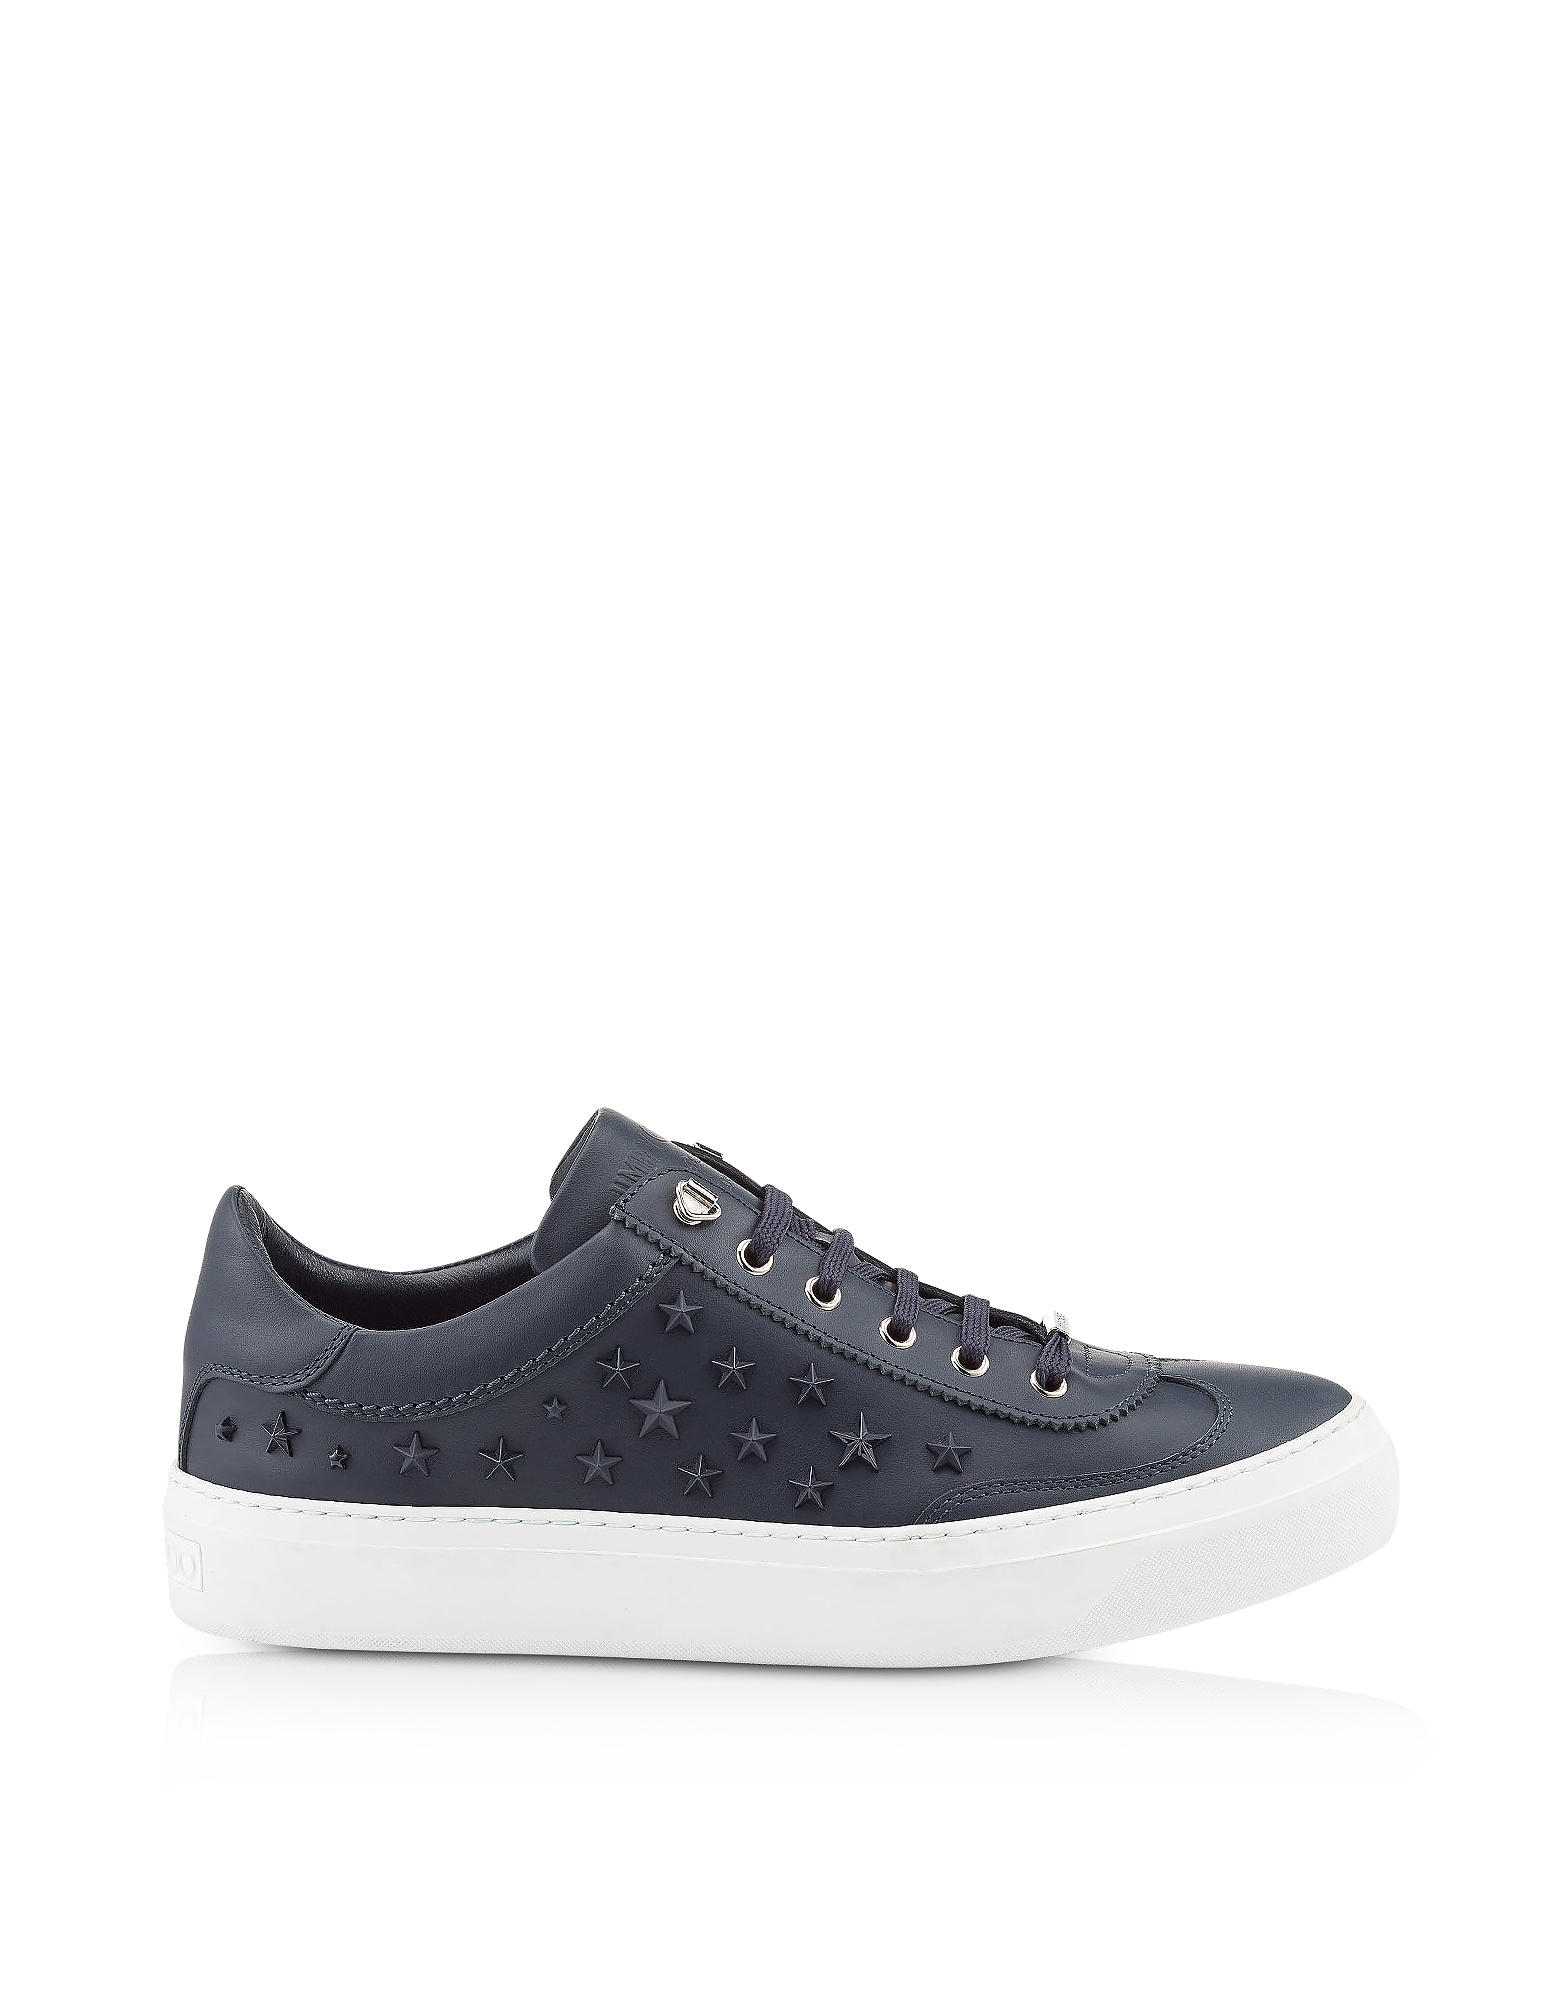 Jimmy chooDesigner Shoes, Ace OMX Navy Leather Low Top Sneakers w/Studded Stars